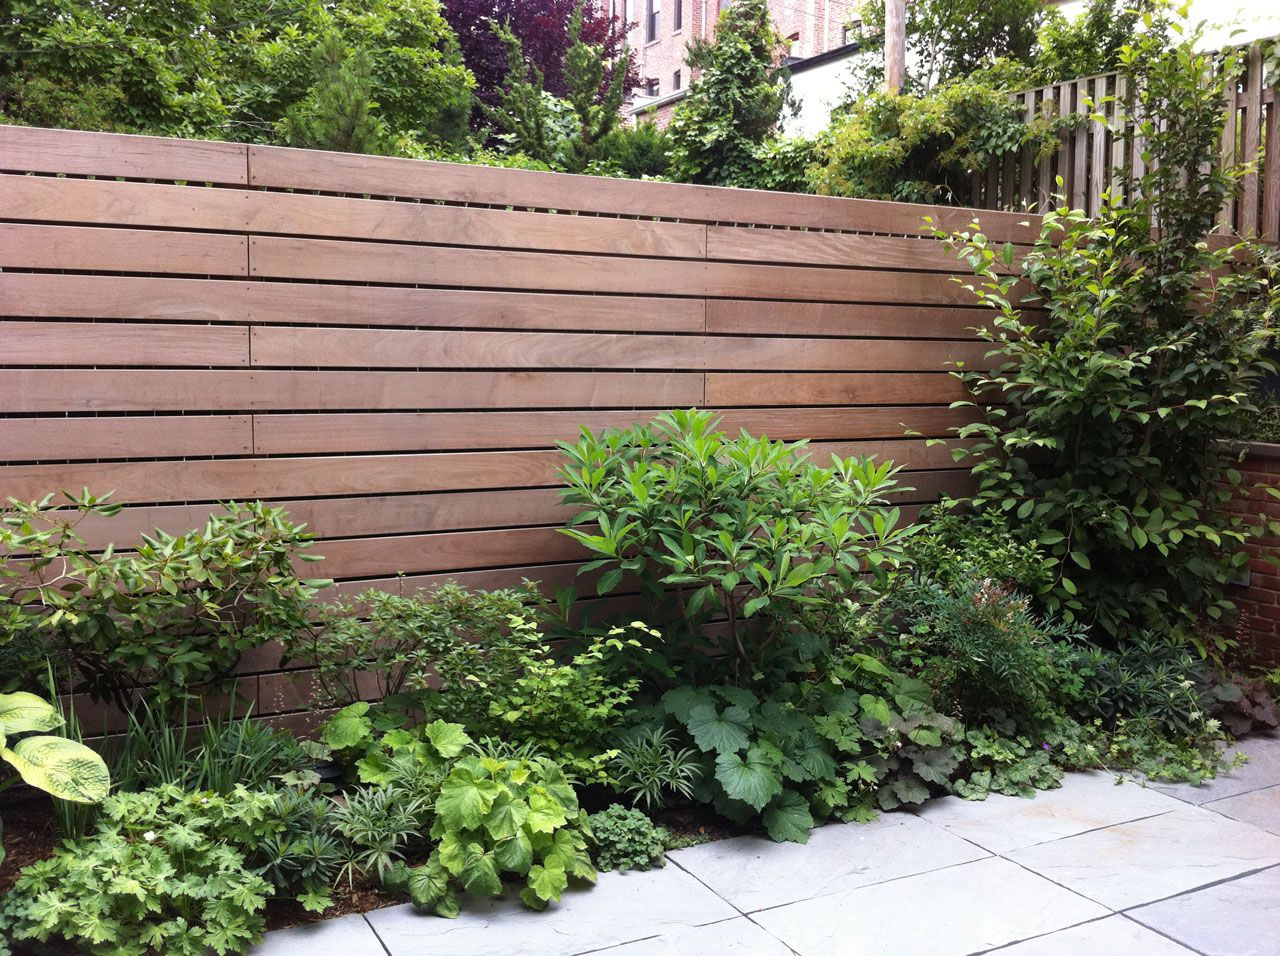 10 Garden Fence Ideas To Make Your Green Space More